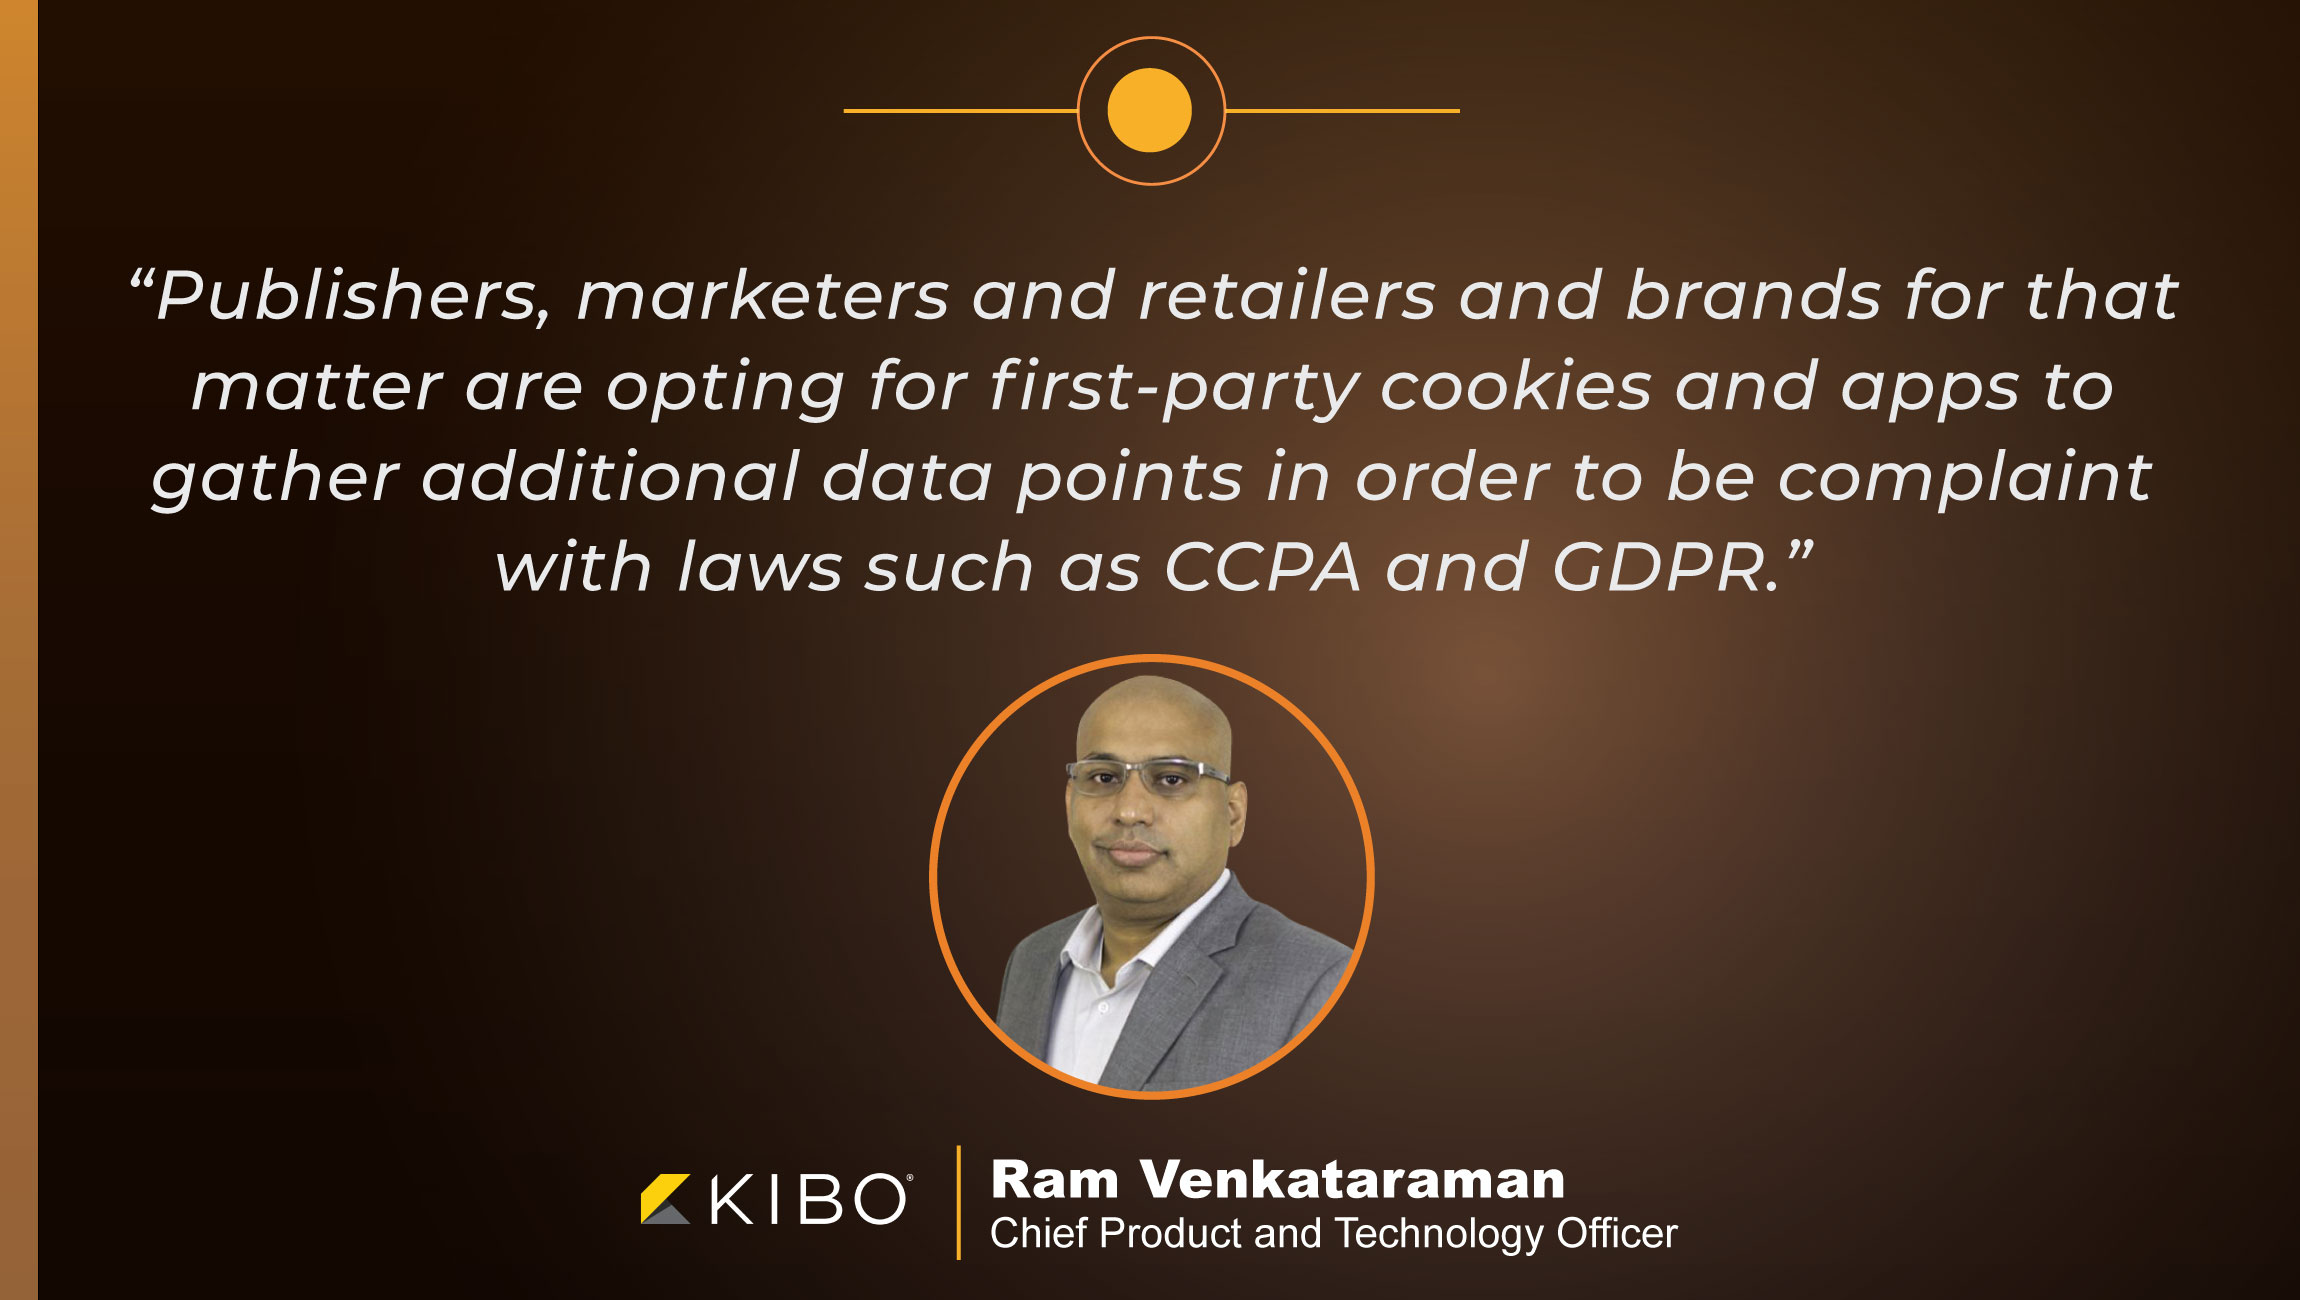 TechBytes with Ram Venkataraman, Chief Product and Technology Officer, Kibo